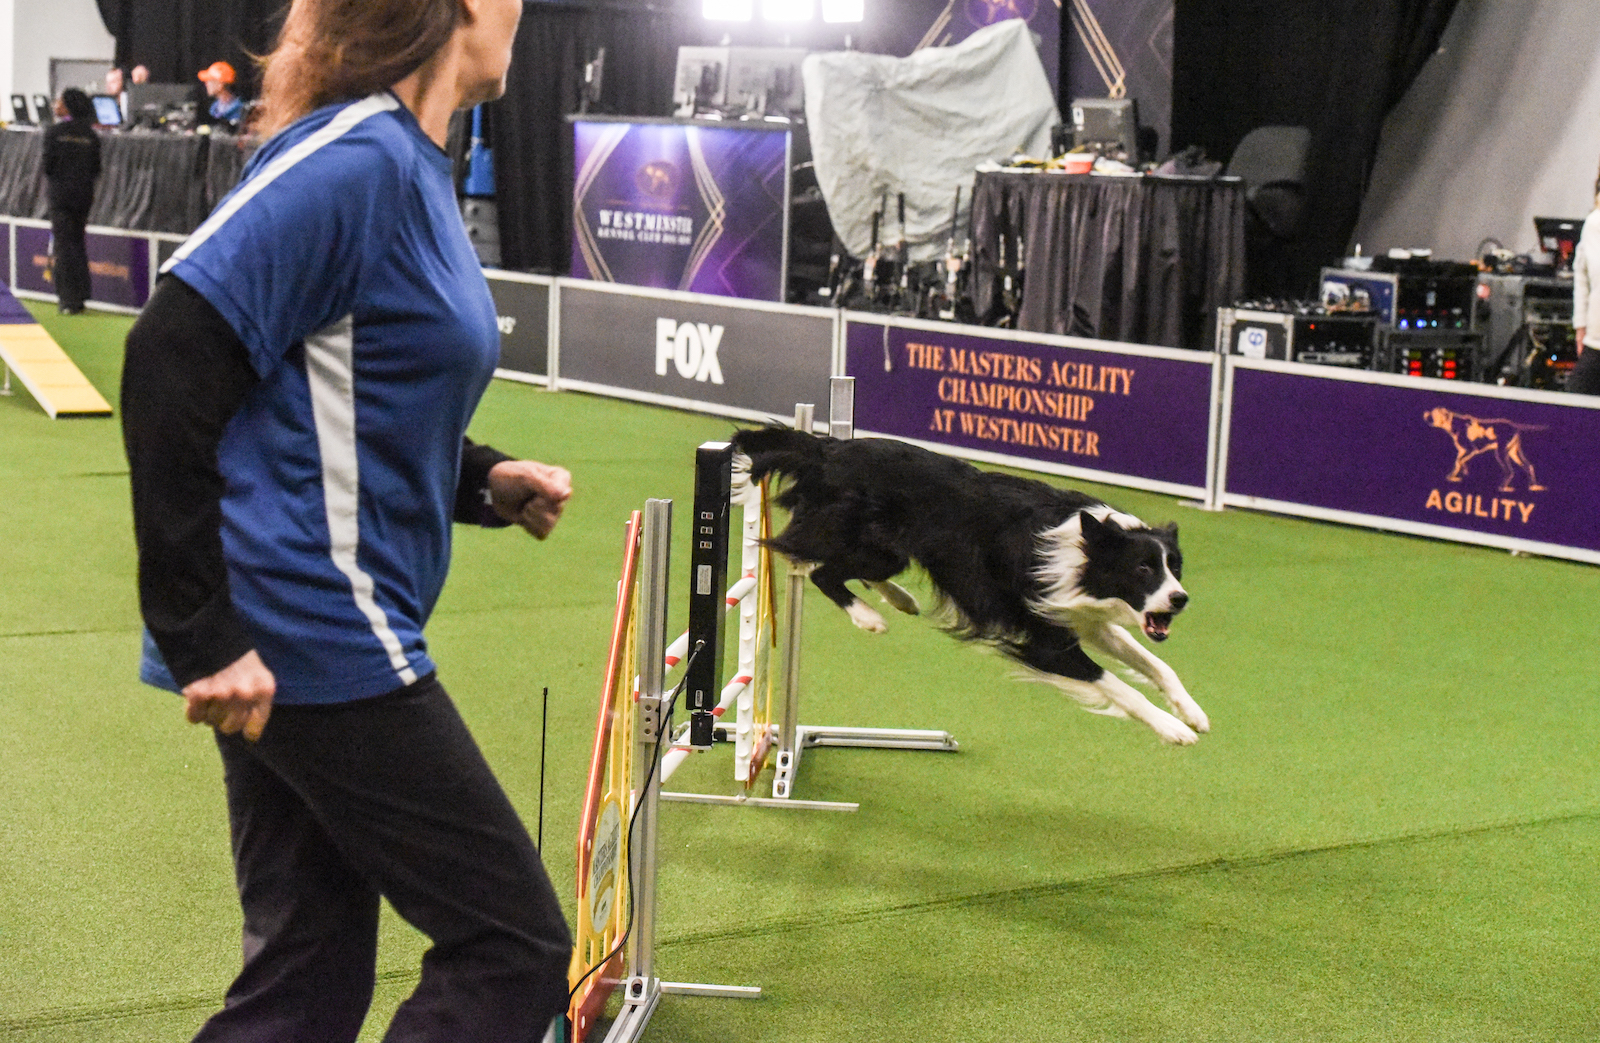 Border Collie competes in the Westminster Dog Show Agility Championship